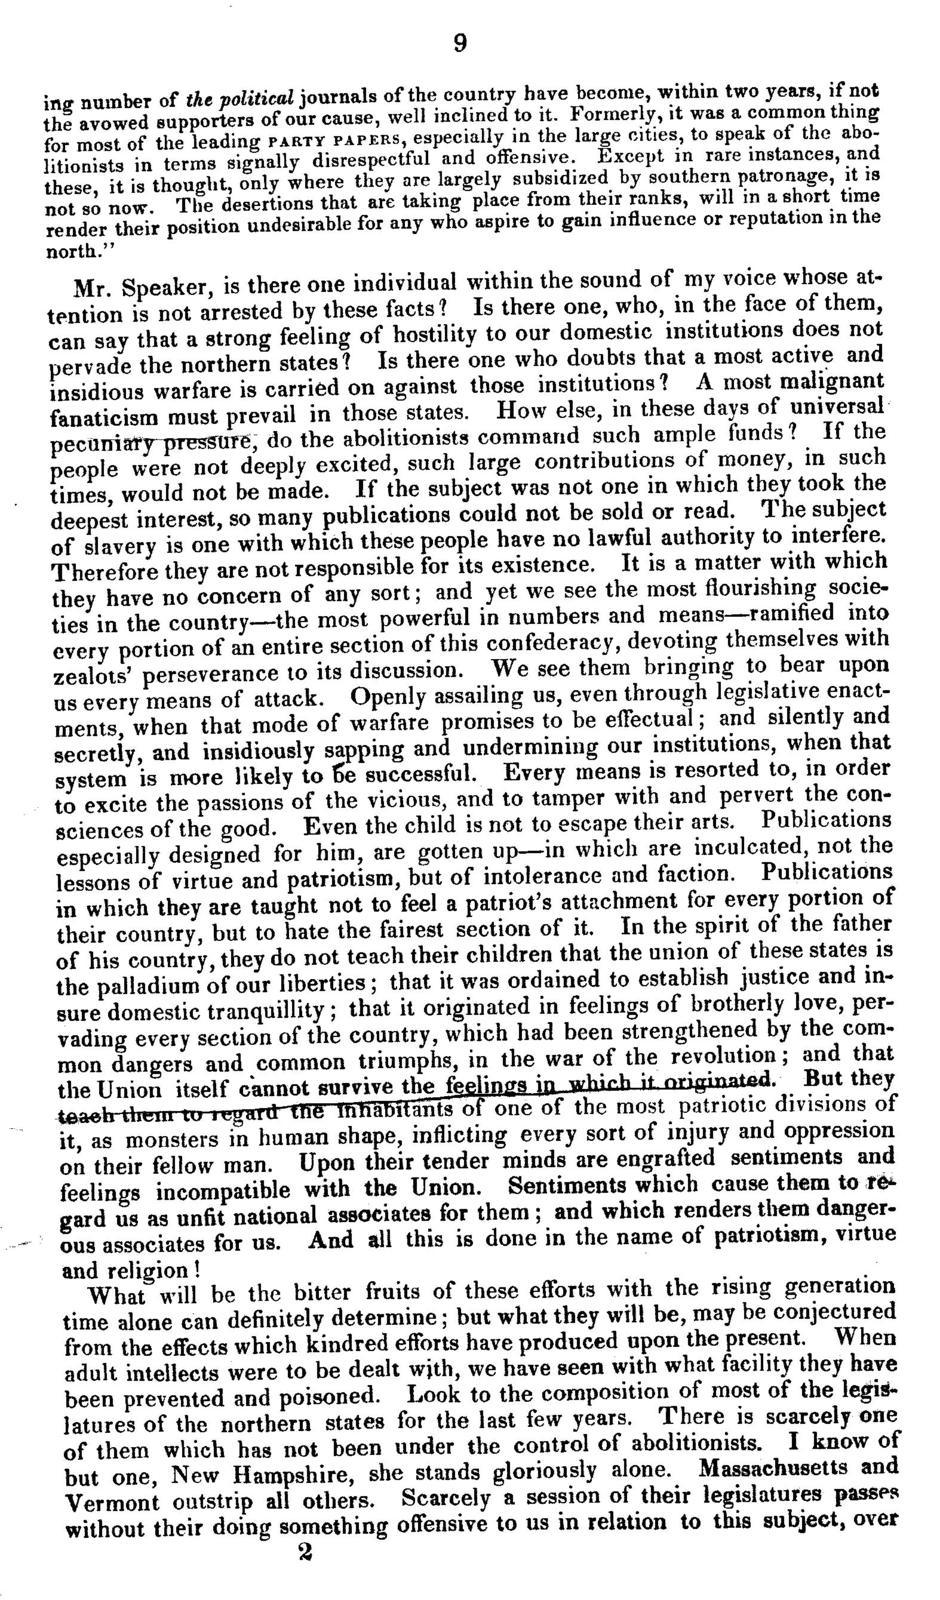 Speech of Mr. Bayly of Accomack, on the bill to prevent citizens of New York from carrying slaves out of this commonwealth, and to prevent the escape of persons charged with the commission of any crime, and in reply to Mr. Scott of Fauquier, delivered in the House of delegates of Virginia, on the 25th and 26th of February 1841. Published by members of the Senate and House of delegates.